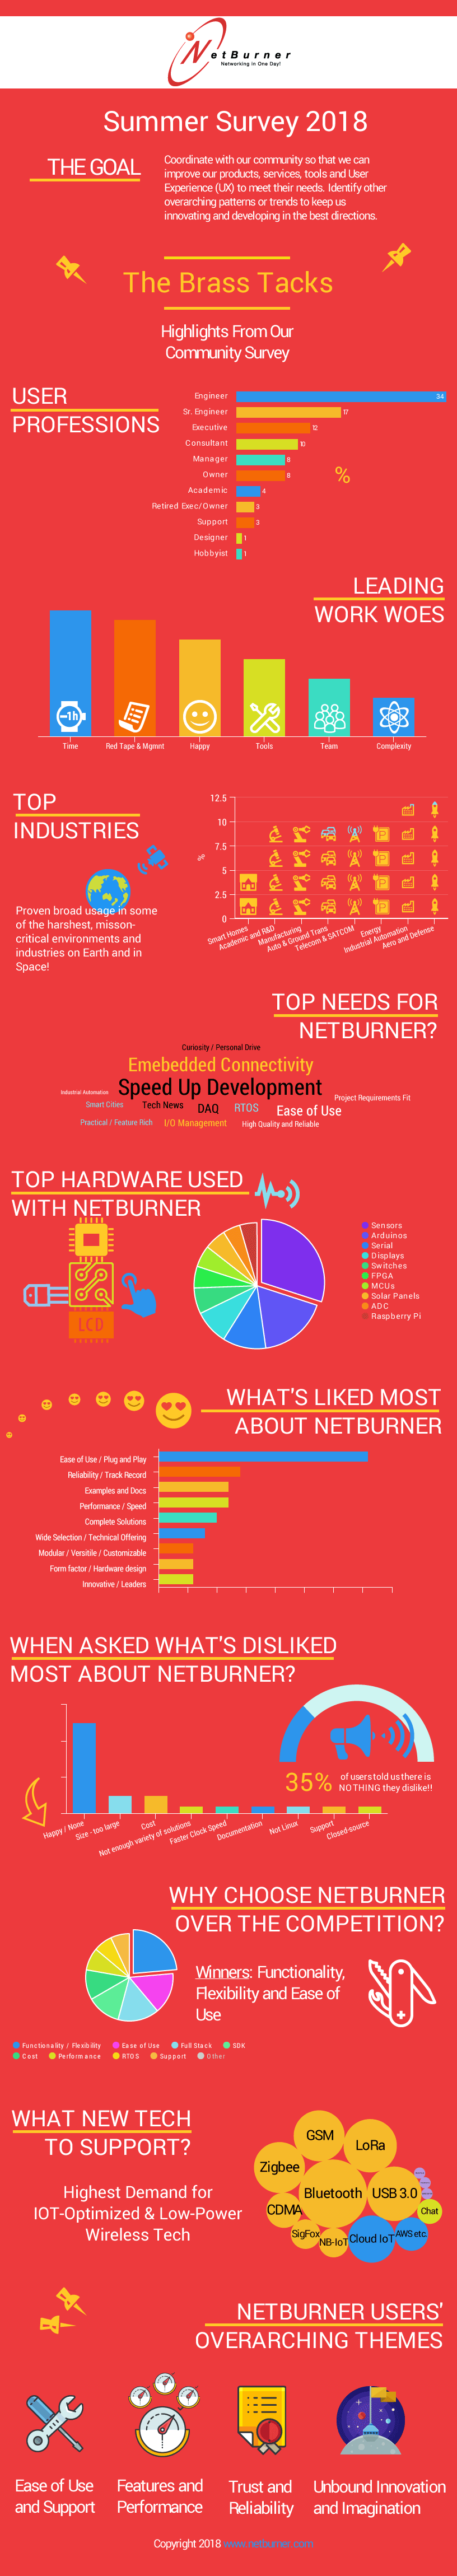 Infographic NetBurner IOT User Survey